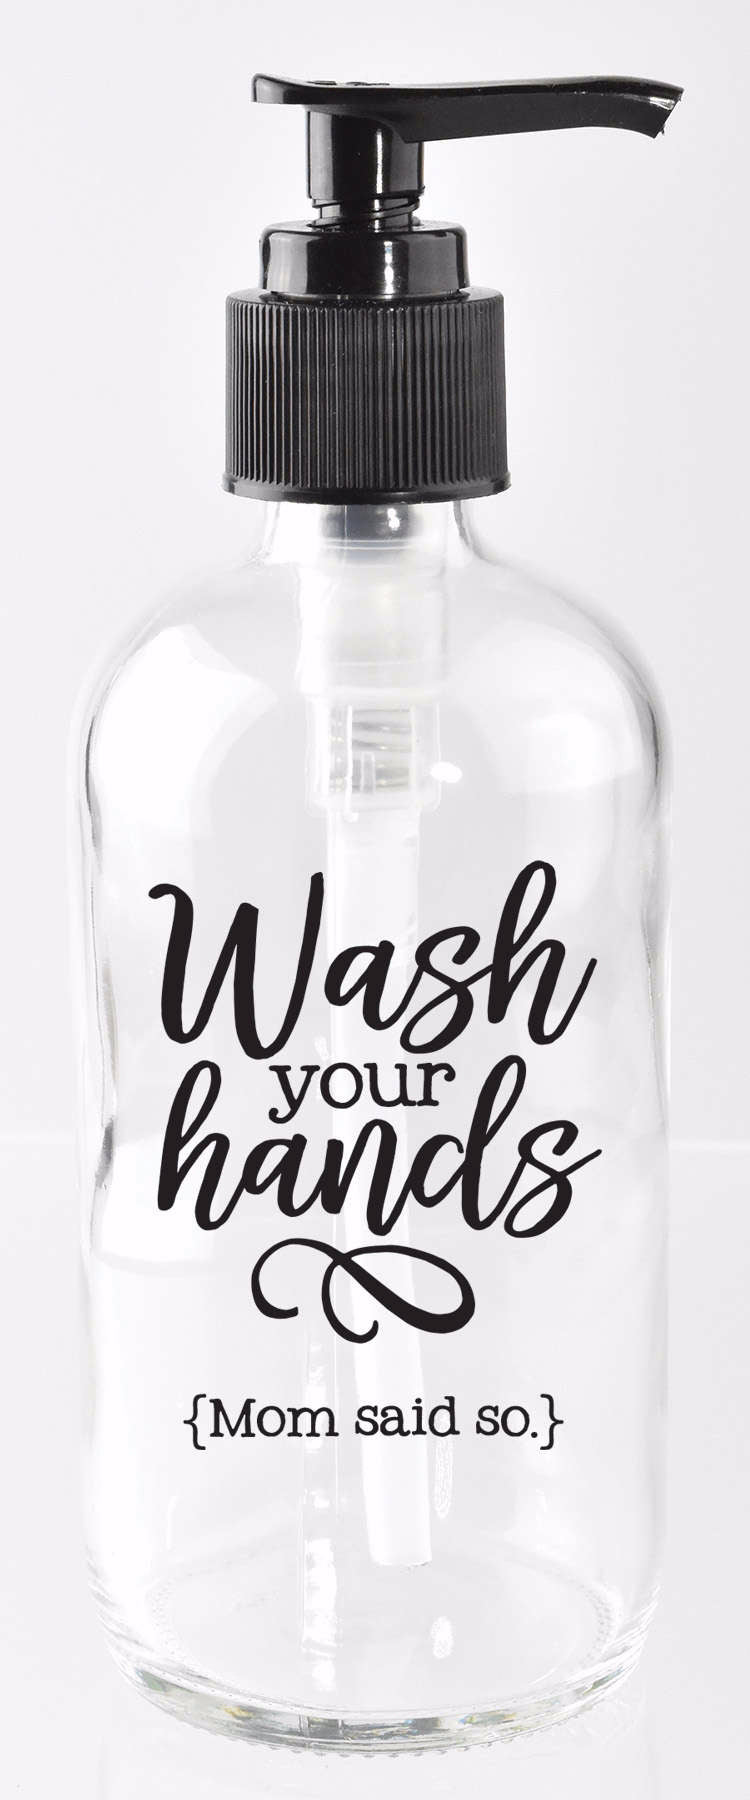 Soap Dispenser-Wash Your Hands (Mom Said So)